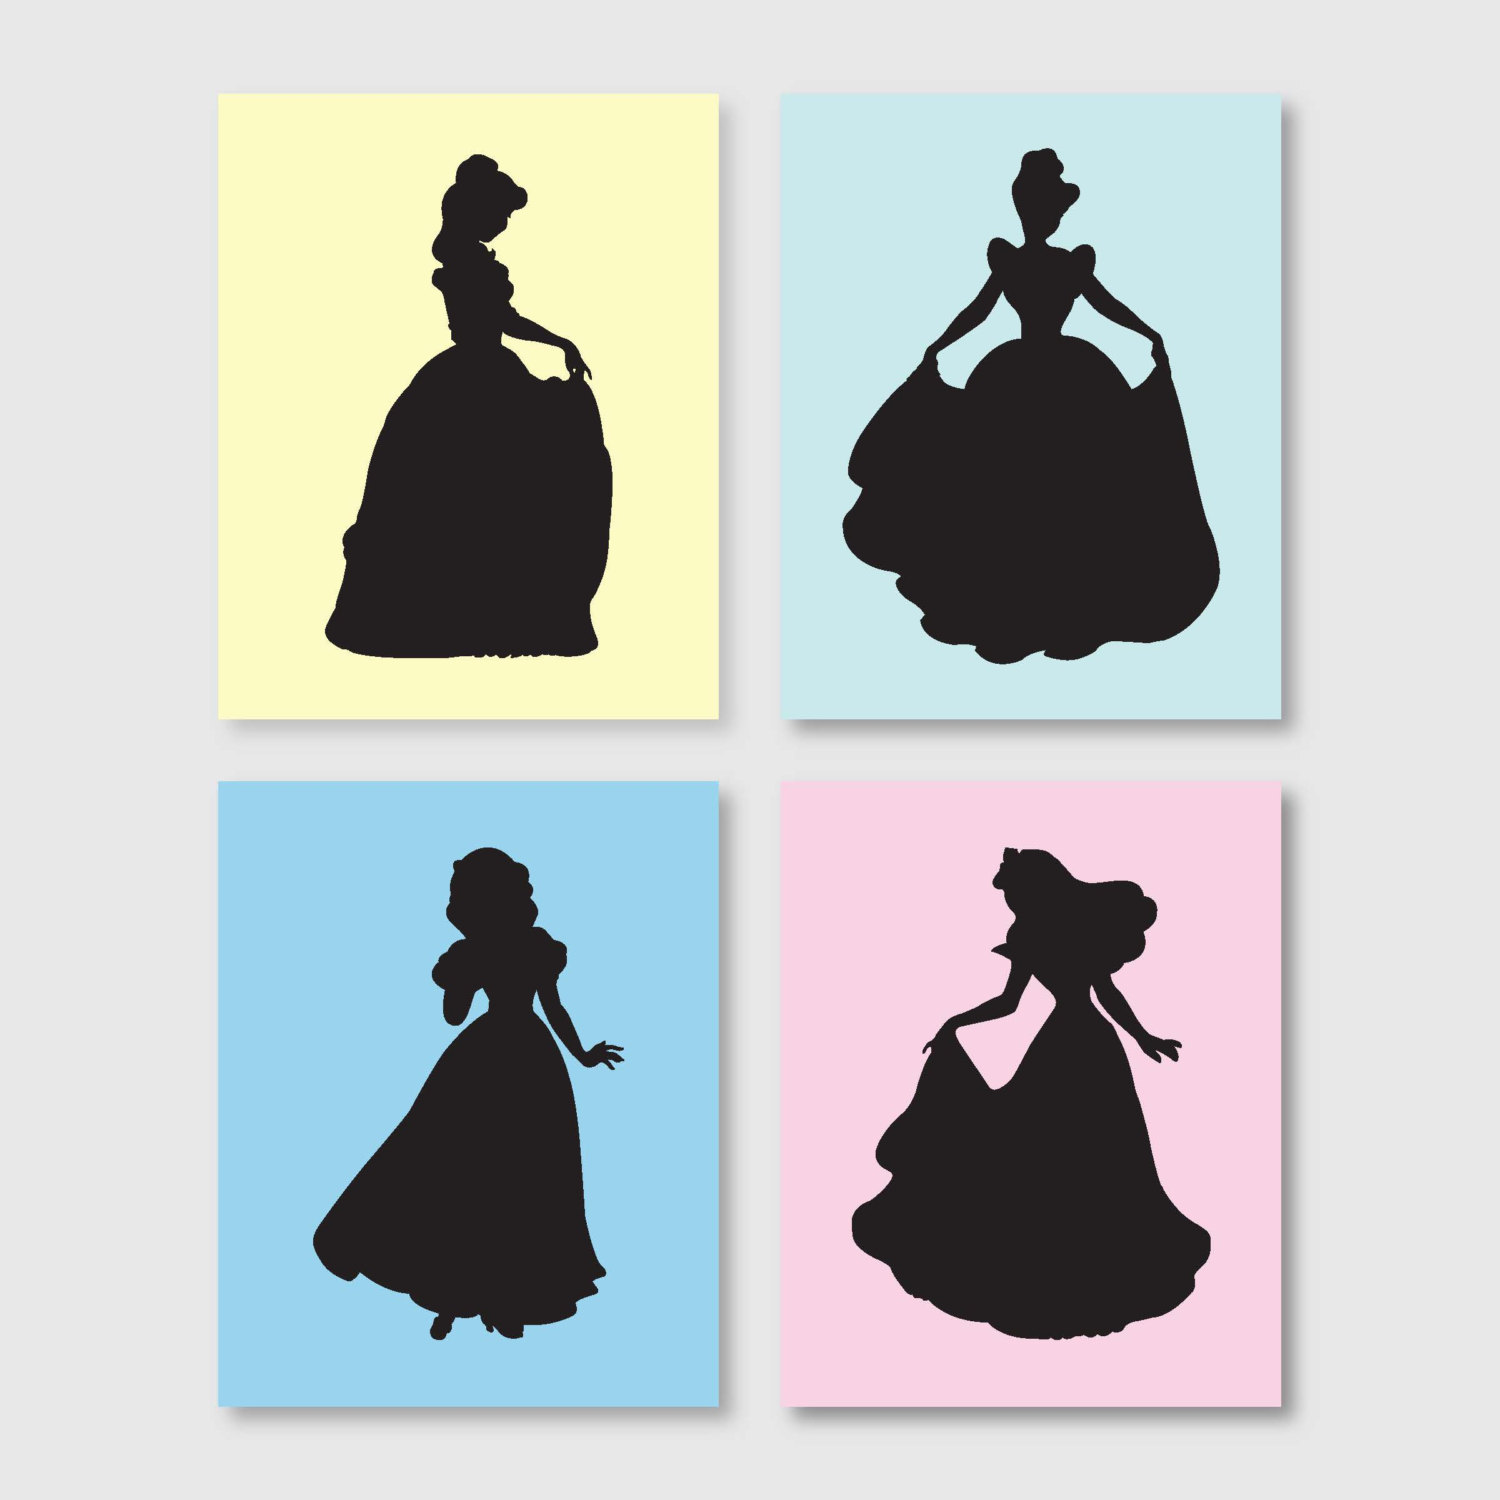 1500x1500 Princess Silhouette By Sandra.torres.18 Cute To Be Printed